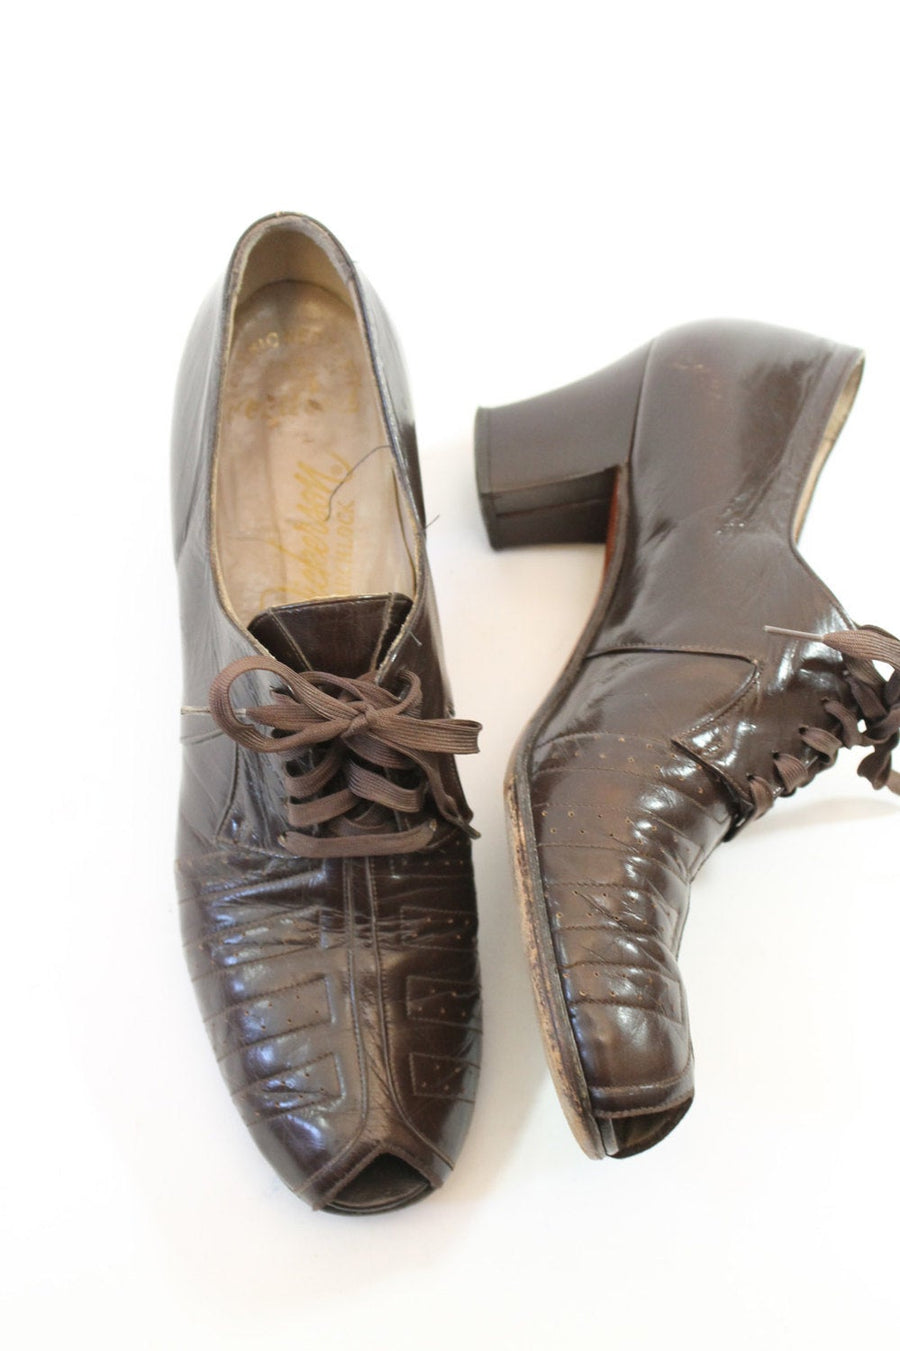 1930s oxford shoes | peeptoe laceup heels | size 7-7.5